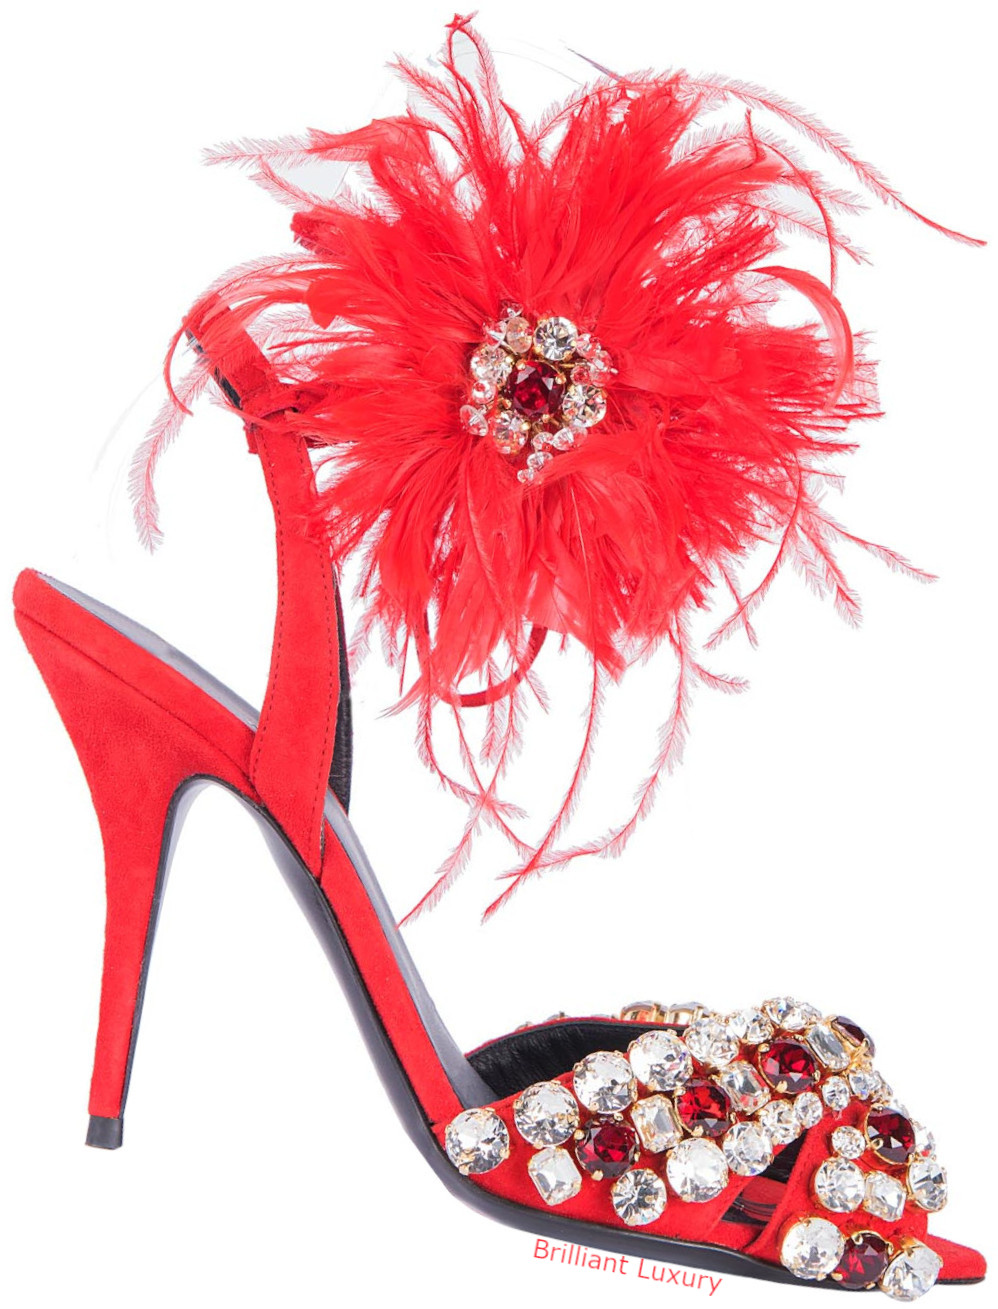 Gedebe feathered sandals in red